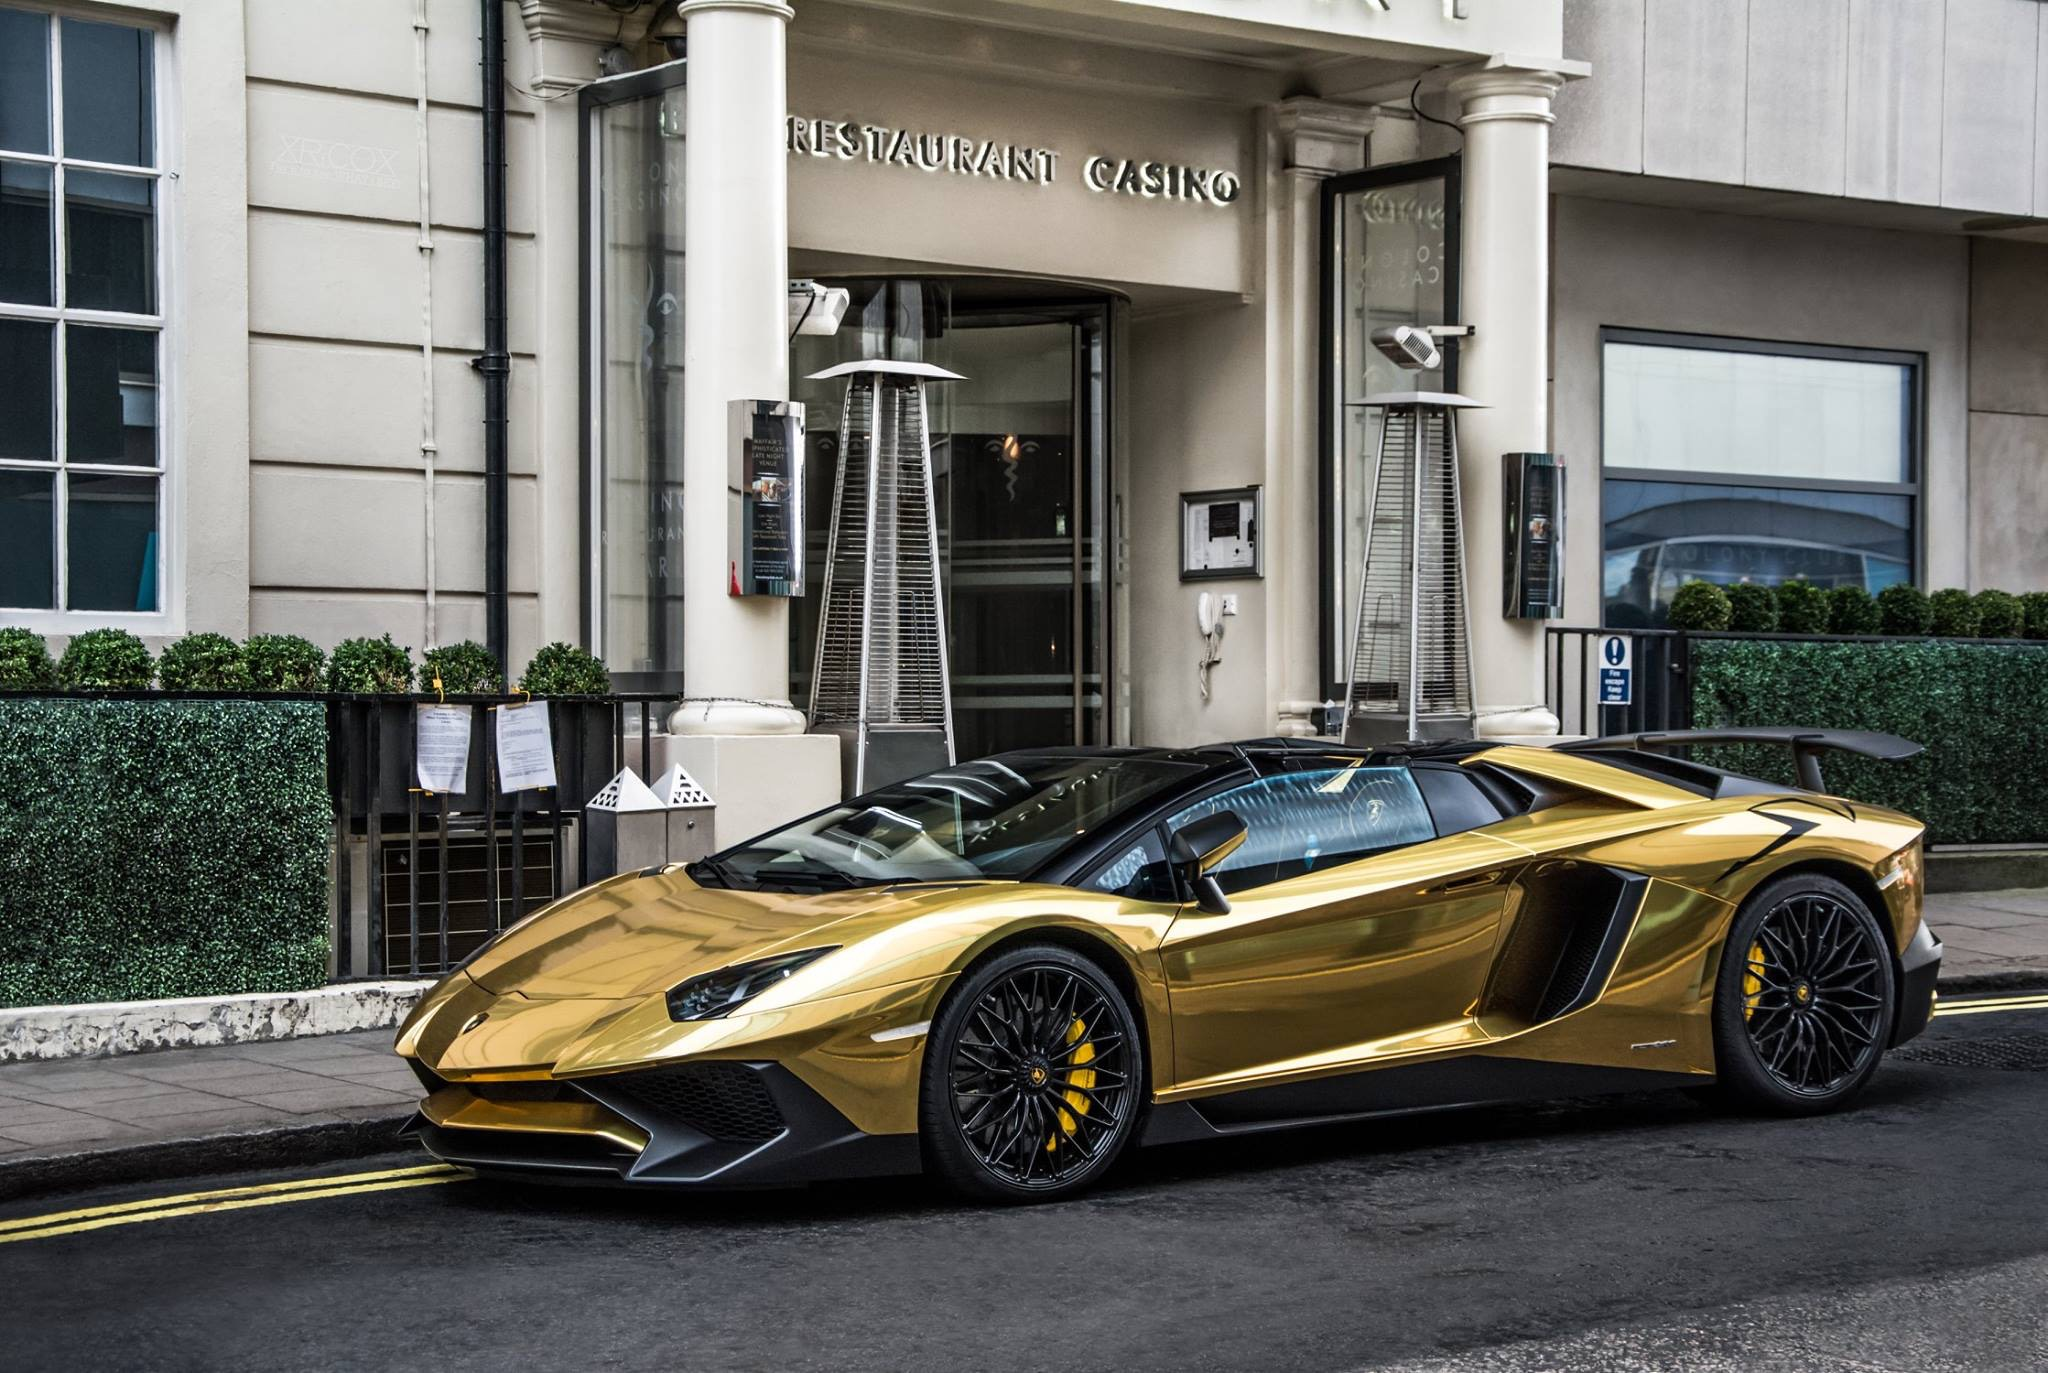 A Gold Lamborghini Aventador Sv Roadster In London